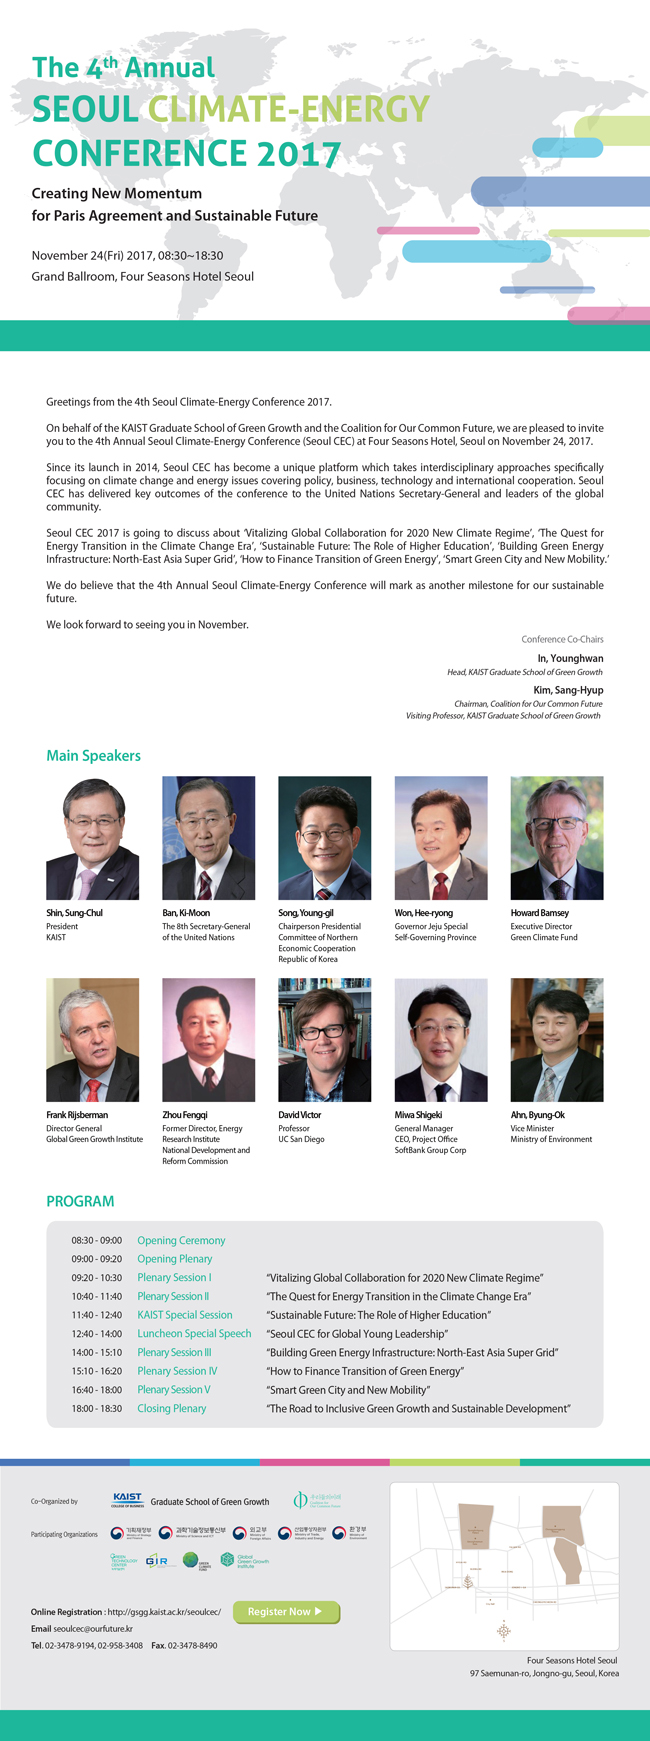 2017 the 4th Annual Seoul Climate-Energy Conference 이미지1